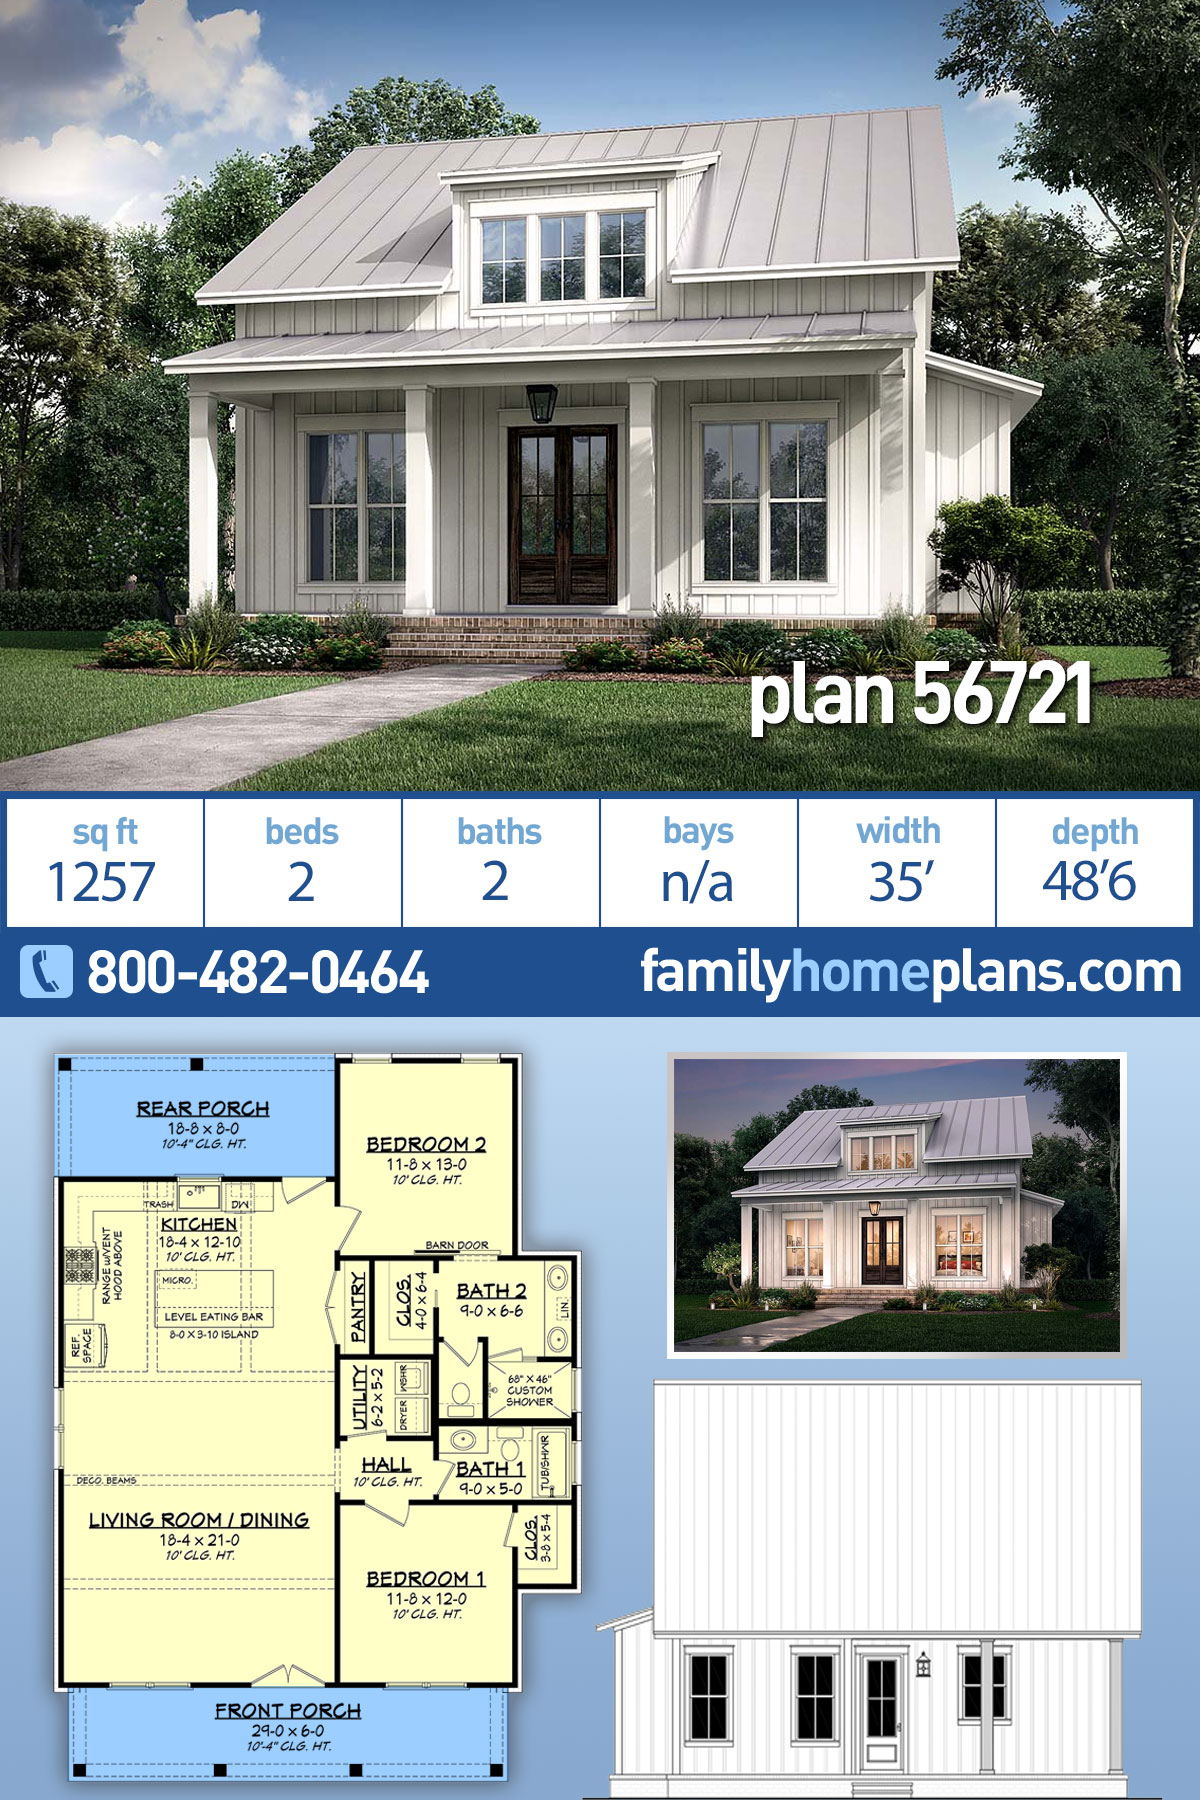 Cottage, Country, Farmhouse House Plan 56721 with 2 Beds, 2 Baths